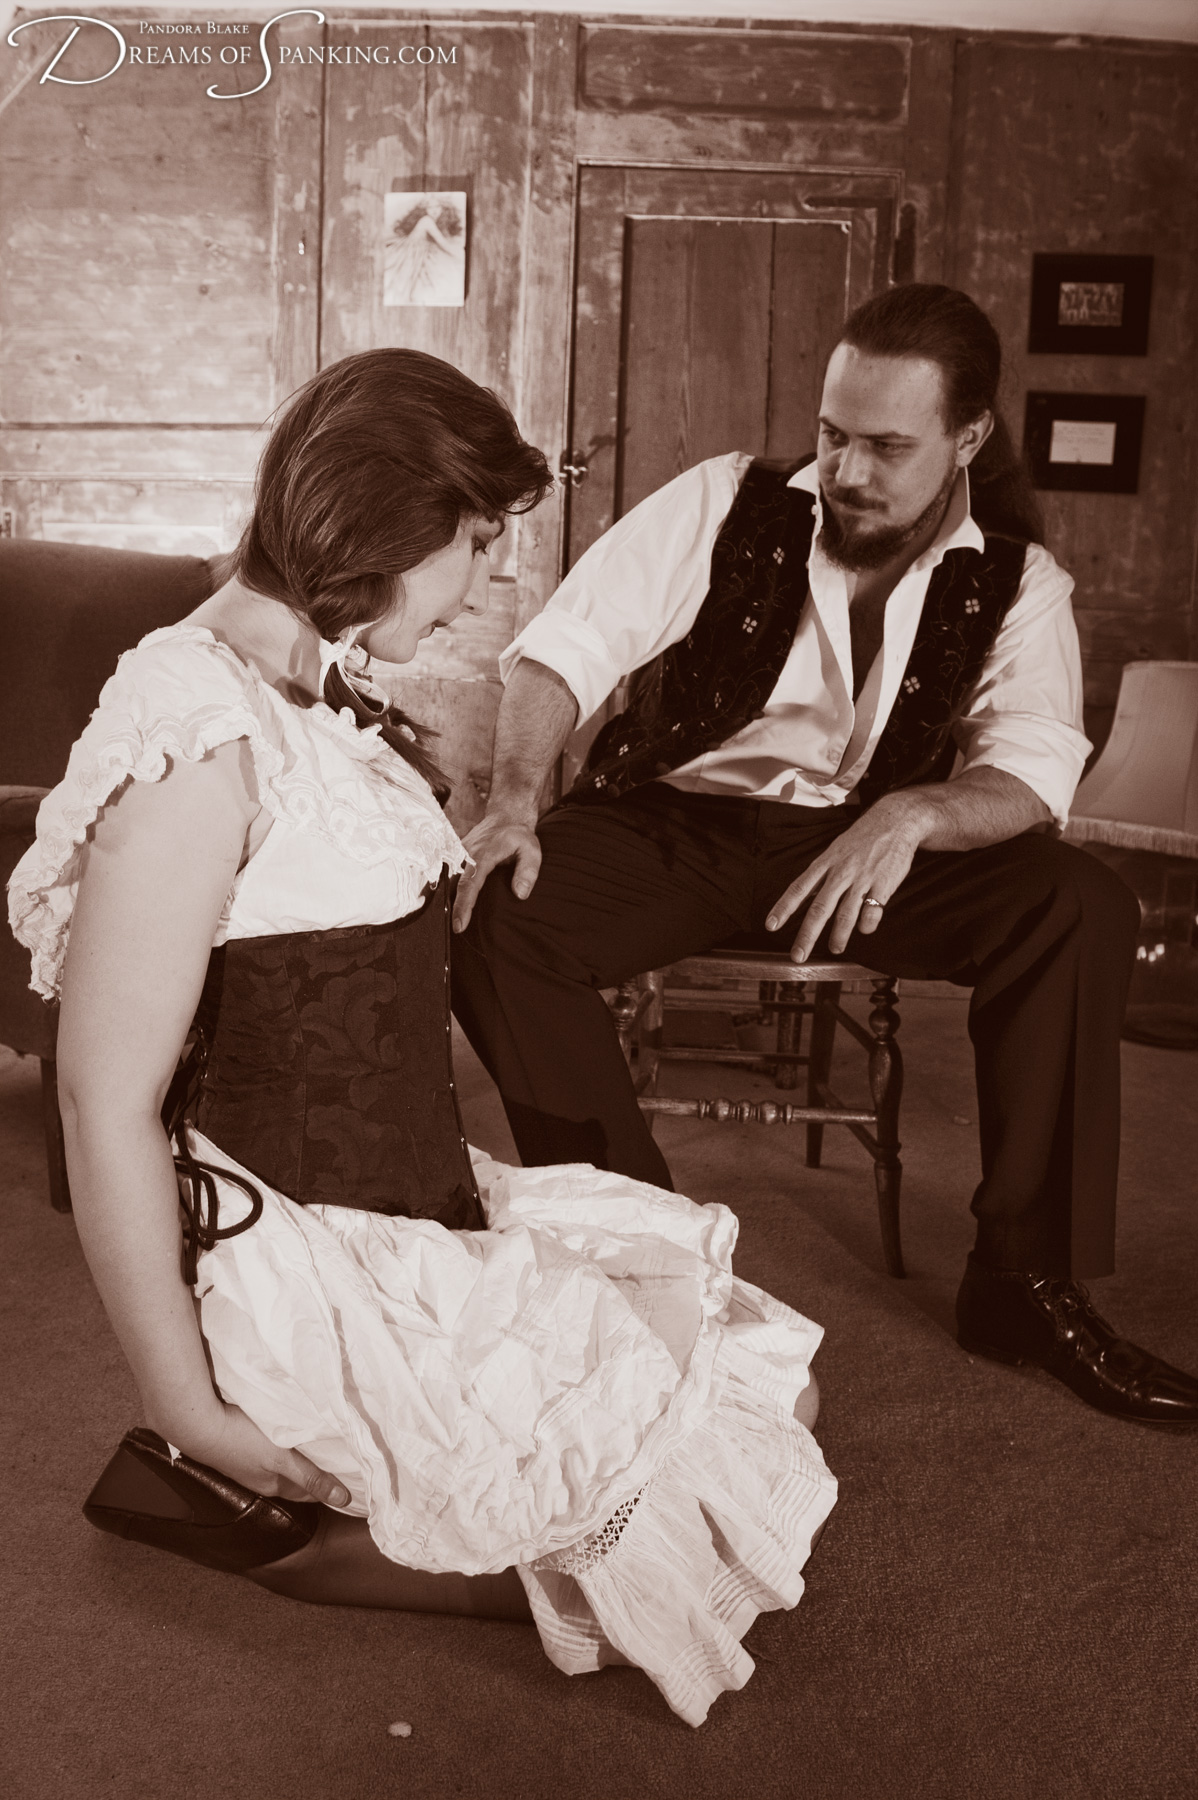 Pandora Blake and Thomas Cameron in The Victorian Brothel at Dreams of Spanking